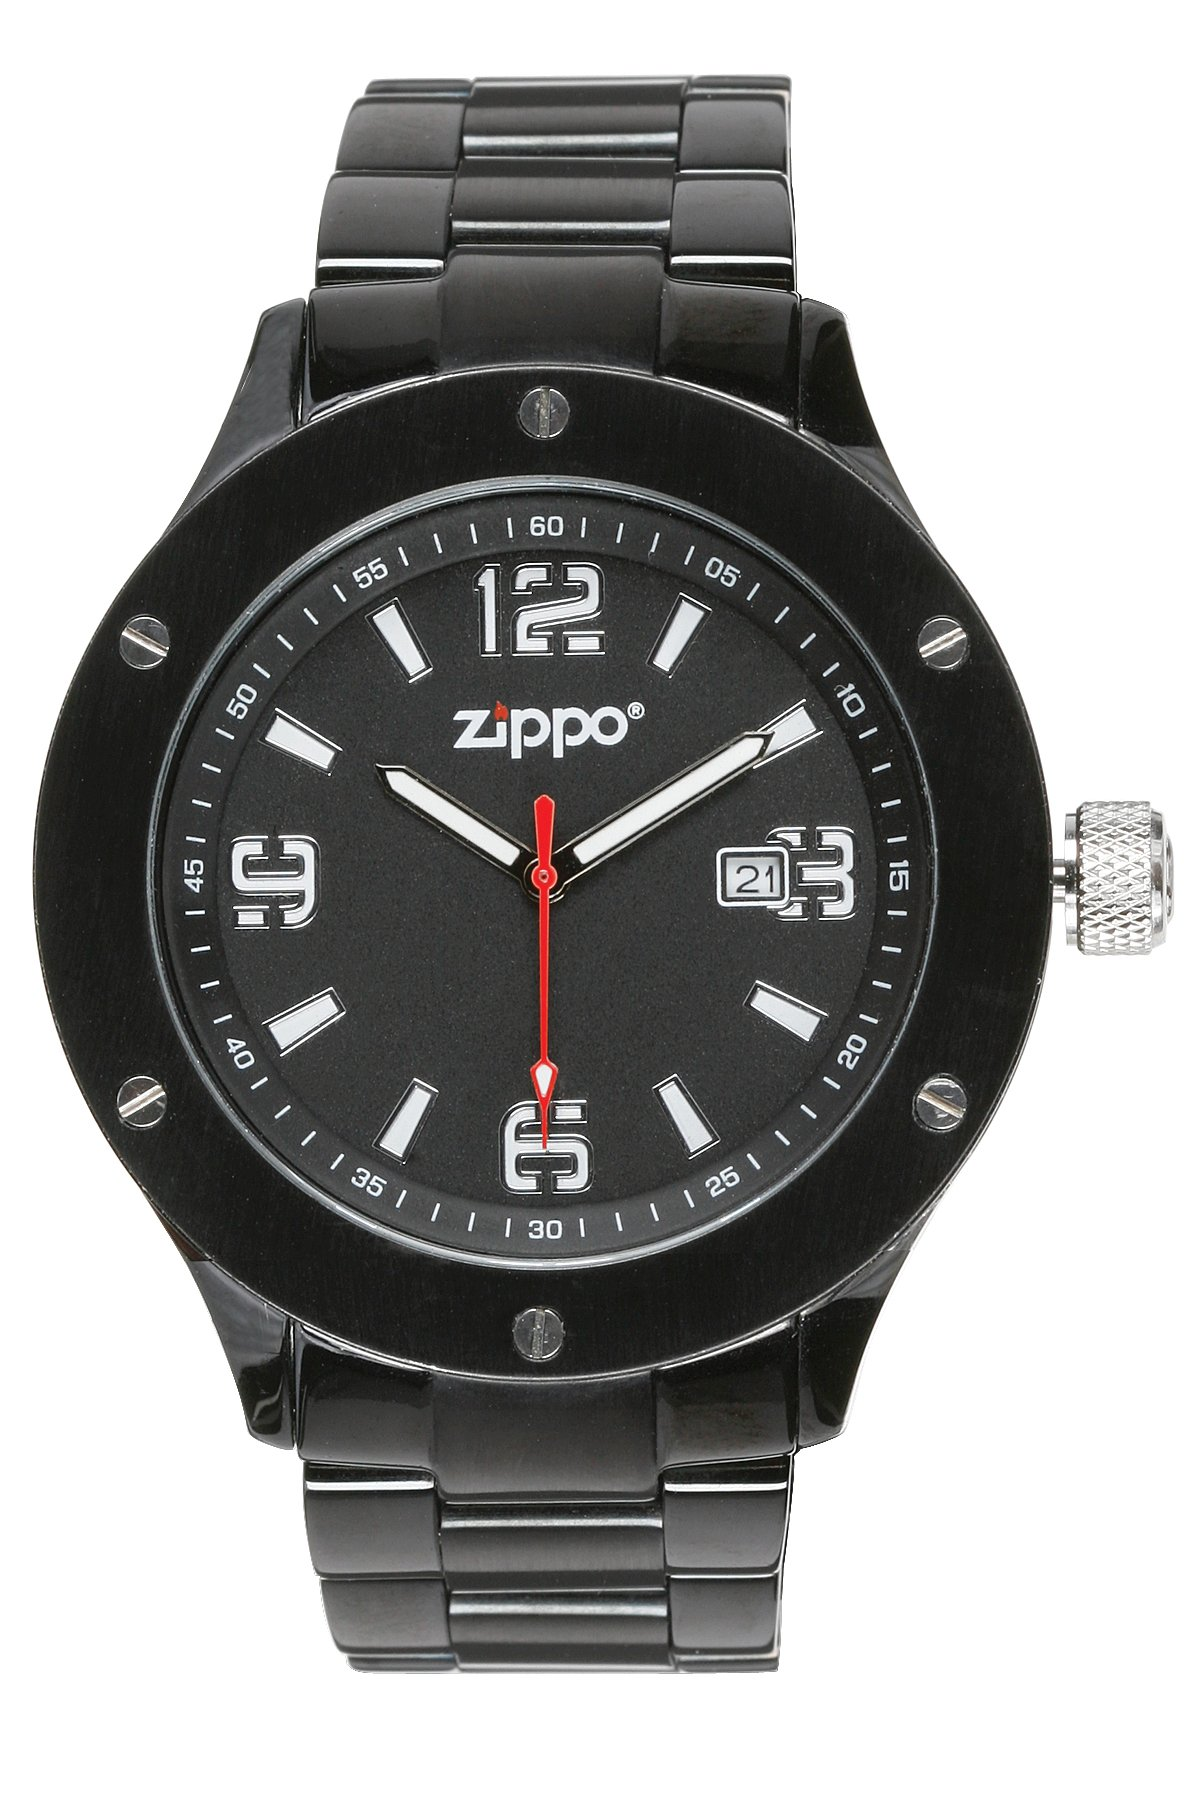 Zippo Work Watch with Black Dial and Solid Stainless Steel Band